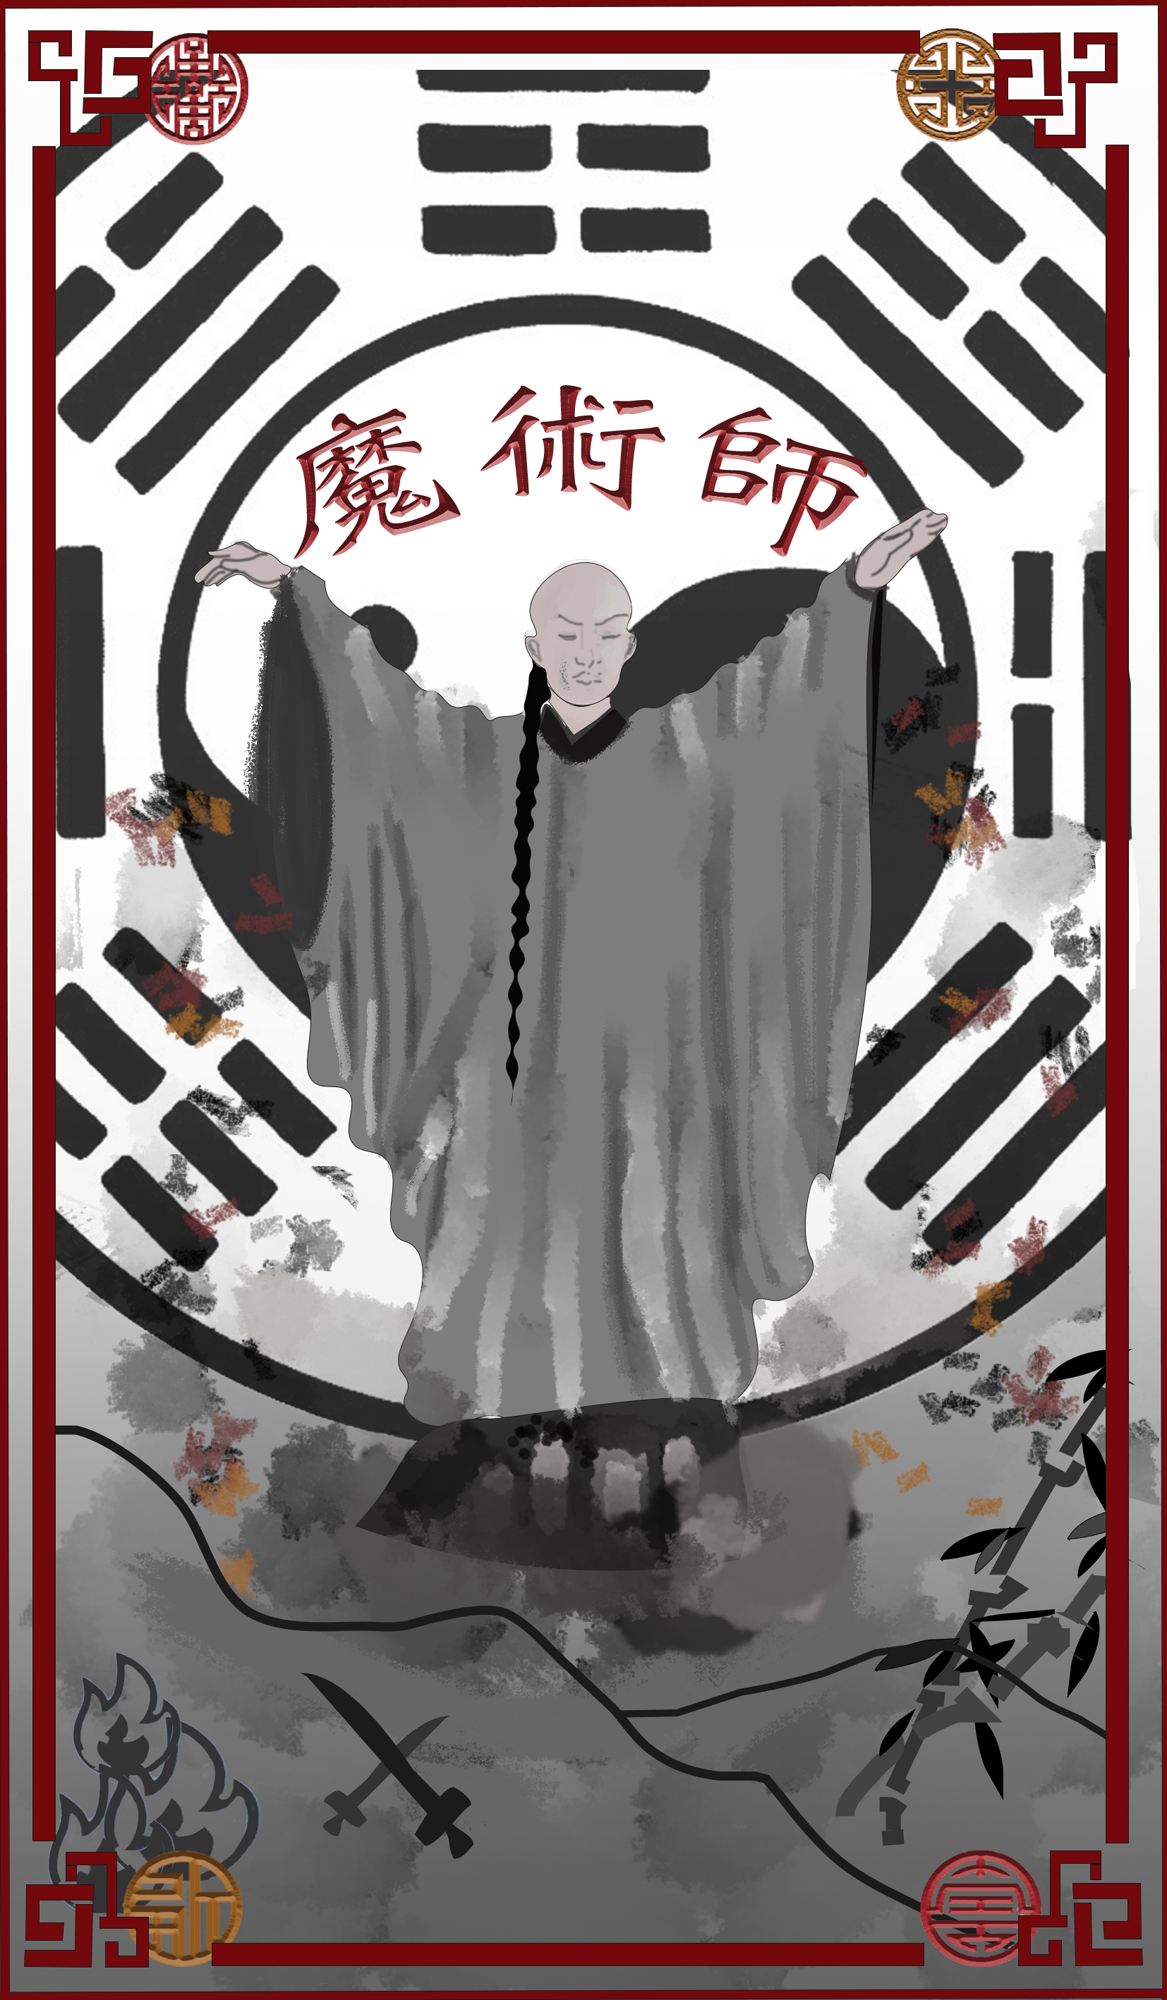 Gray-scale card with a Chinese monk in robes with a long braid faces the viewer with his arms outstretched. Behind him is a yang and yang symbol while red Chinese characters are above his head and a red border around the card